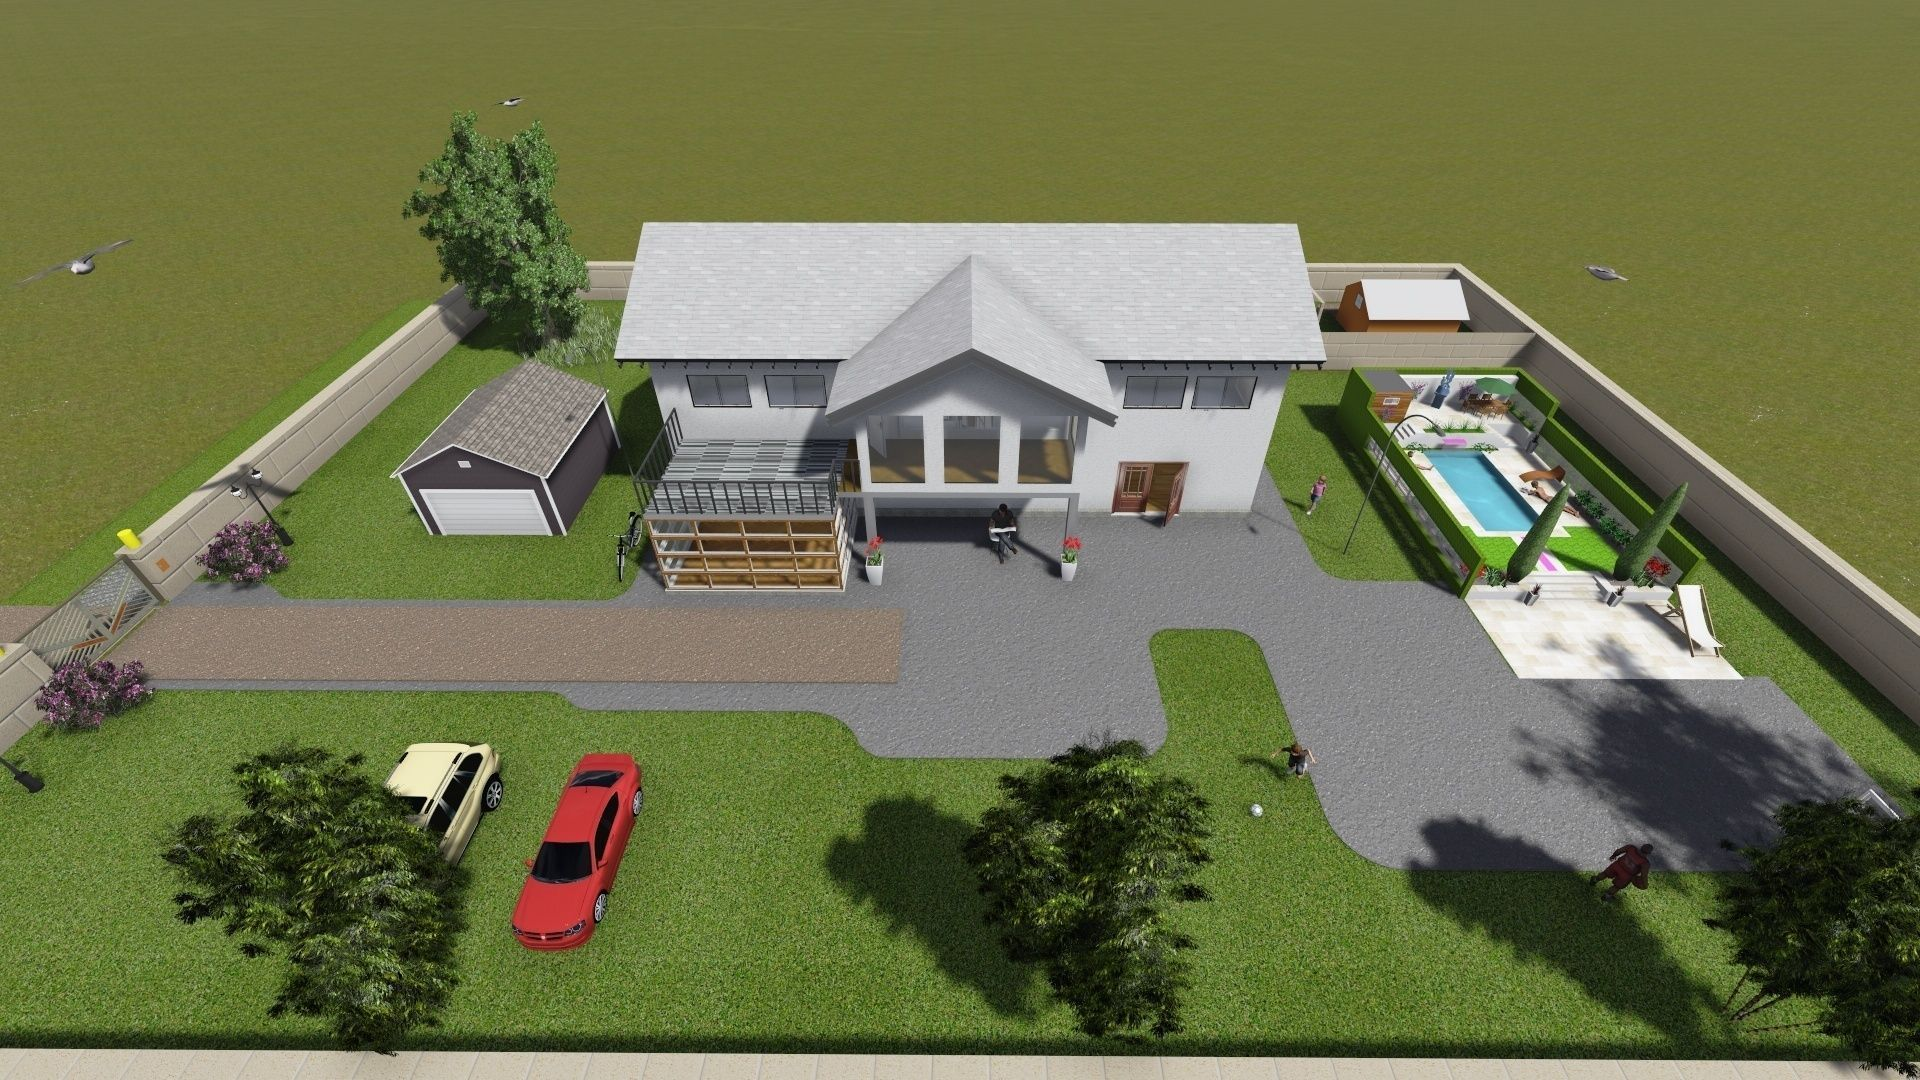 Simple house 3d model skp 4